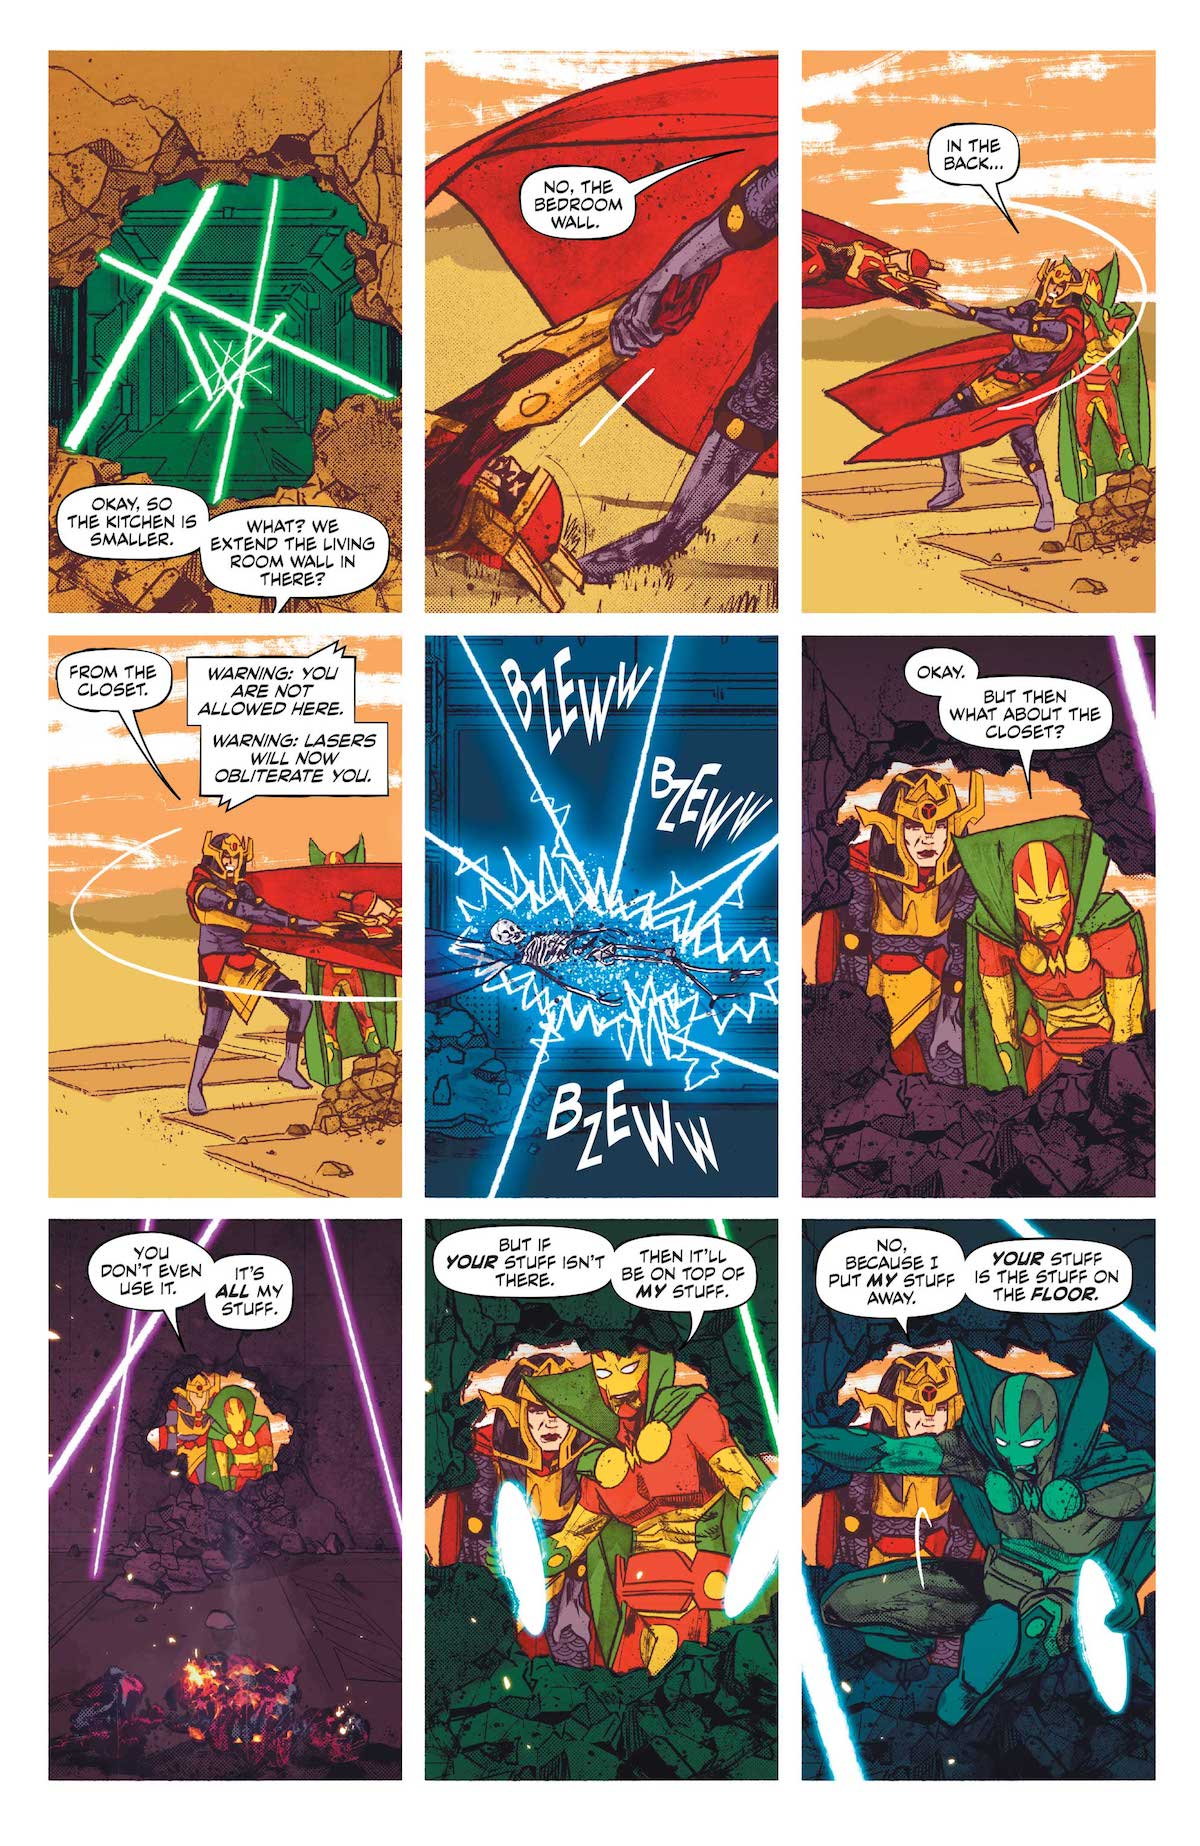 Mister Miracle #6, page 4, Mitch Gerads